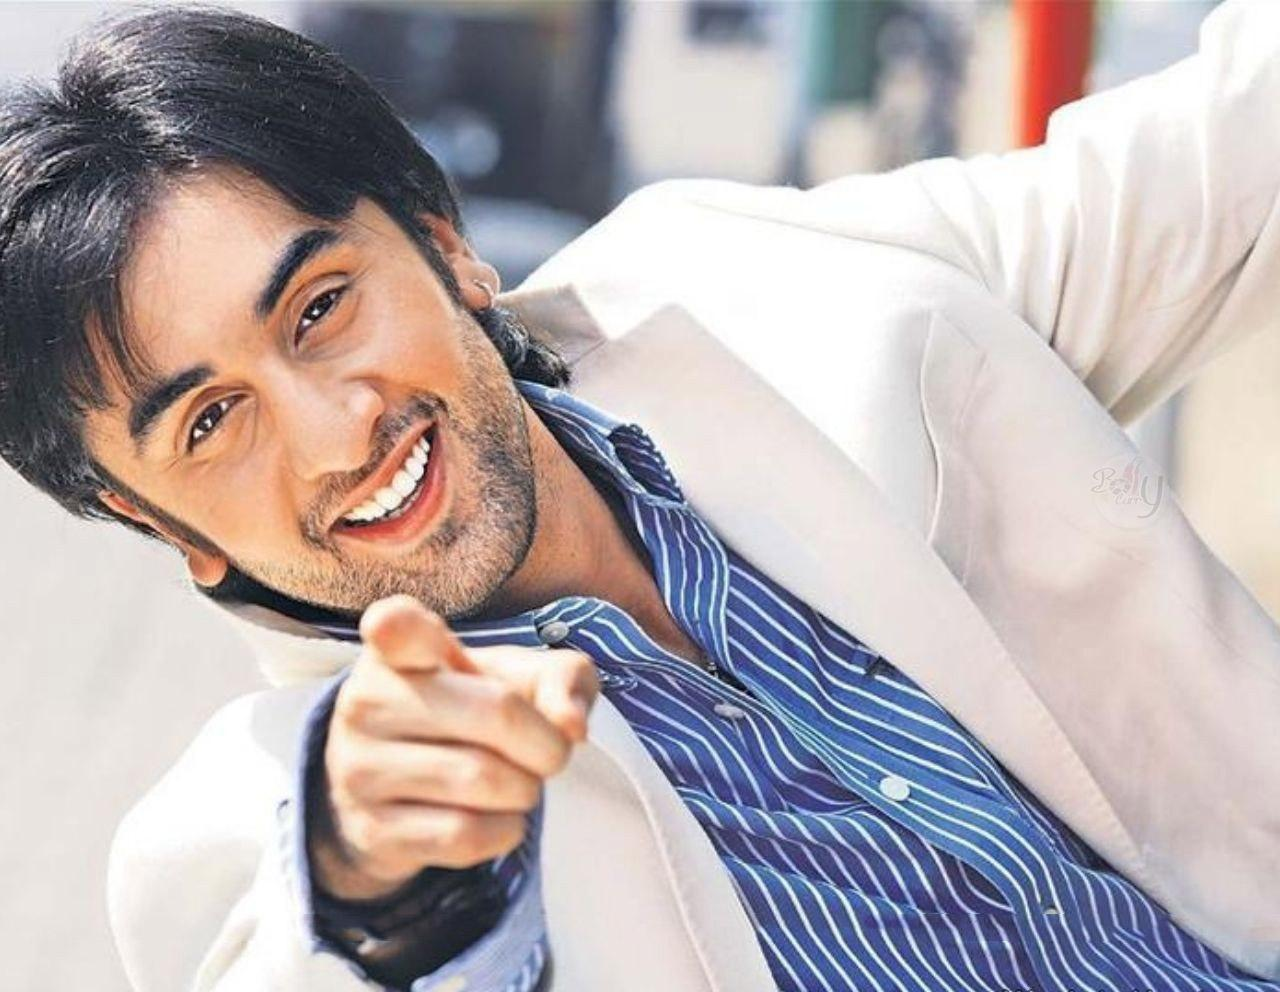 http://2.bp.blogspot.com/--s_dsV4f8ak/TmjPtYJNF6I/AAAAAAAAArY/q5wmskKt4gs/s1600/Stylish-Actor-Ranbir-Kapoor-In-White-Coat-Wallpaper.jpg